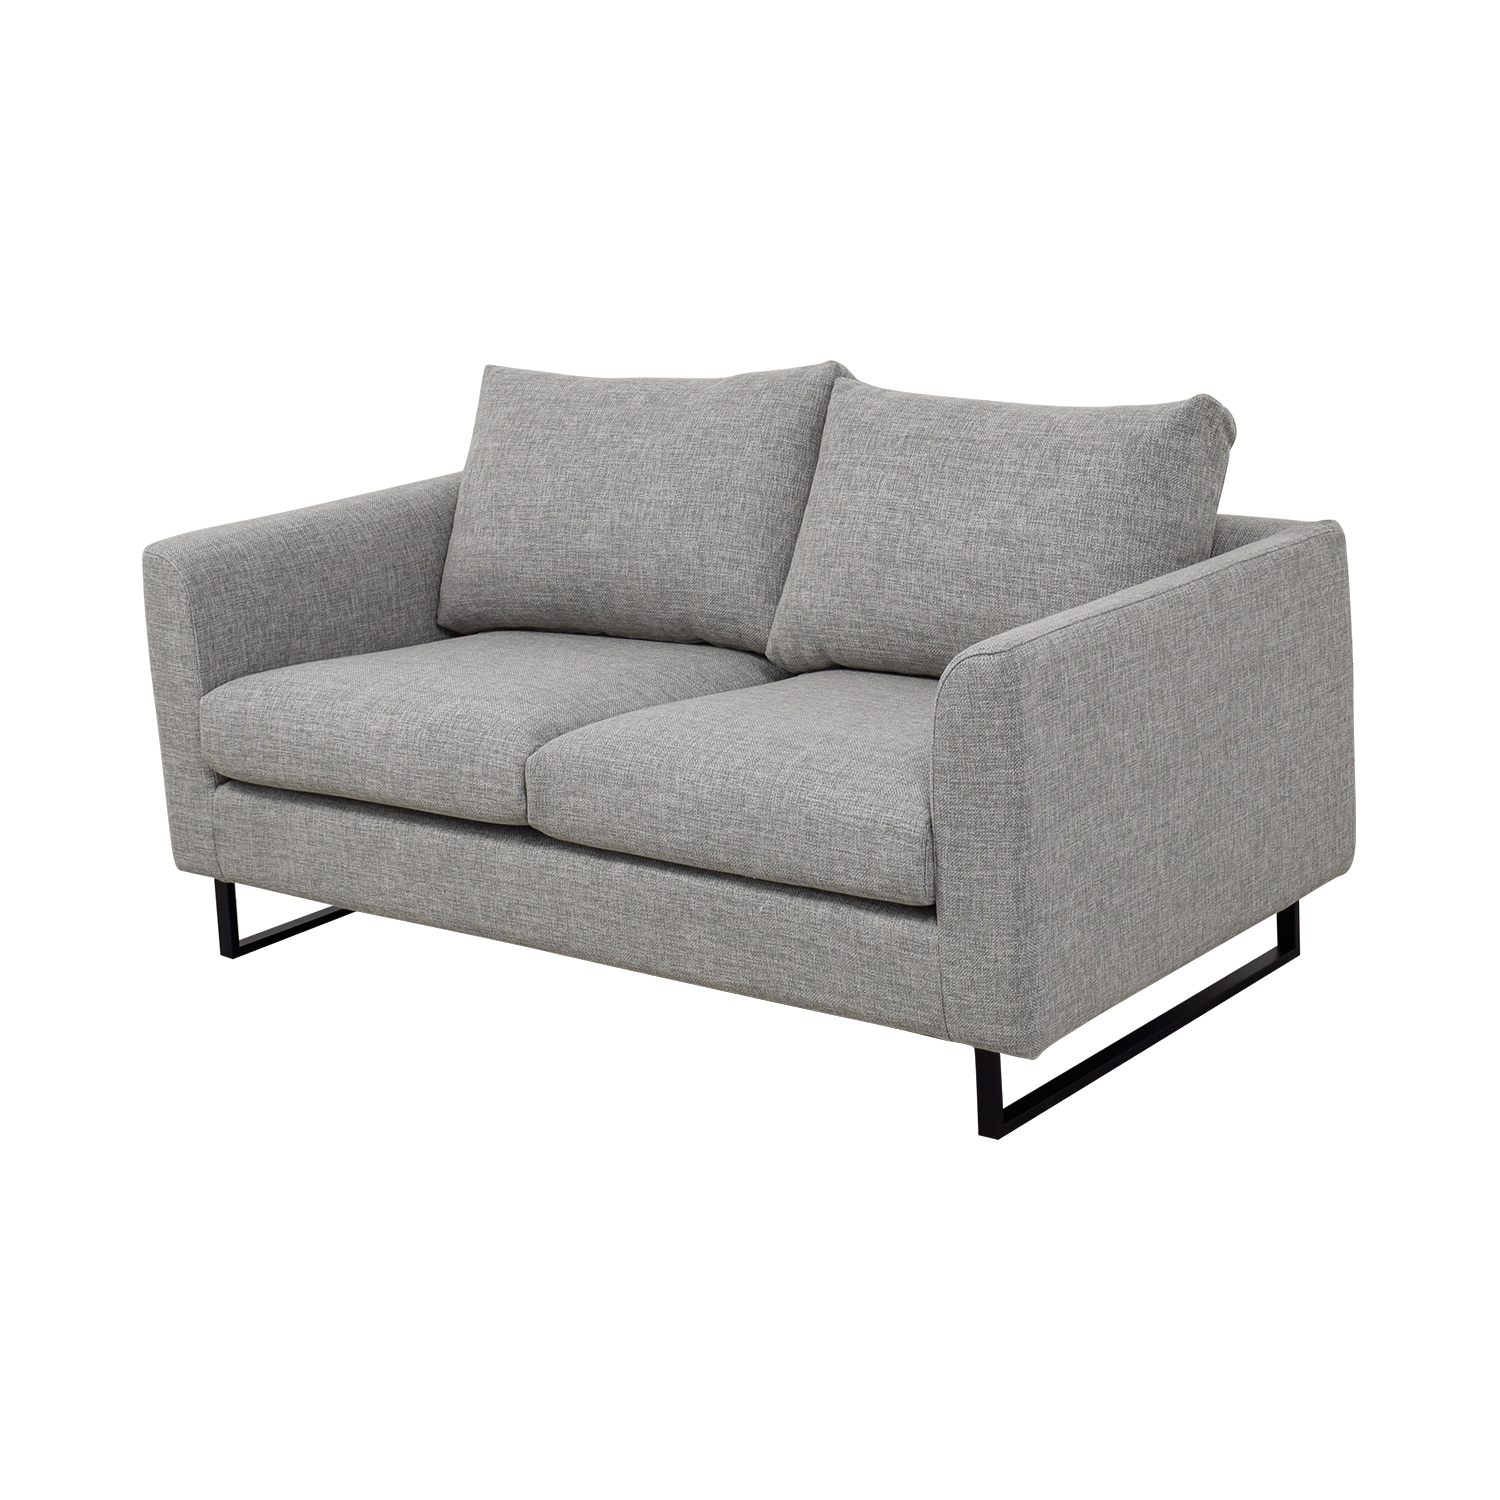 [%63% Off – Owens Gray Loveseat / Sofas Pertaining To Famous Owens Loveseats With Cushion|owens Loveseats With Cushion With Regard To Current 63% Off – Owens Gray Loveseat / Sofas|preferred Owens Loveseats With Cushion With 63% Off – Owens Gray Loveseat / Sofas|famous 63% Off – Owens Gray Loveseat / Sofas Within Owens Loveseats With Cushion%] (View 7 of 20)